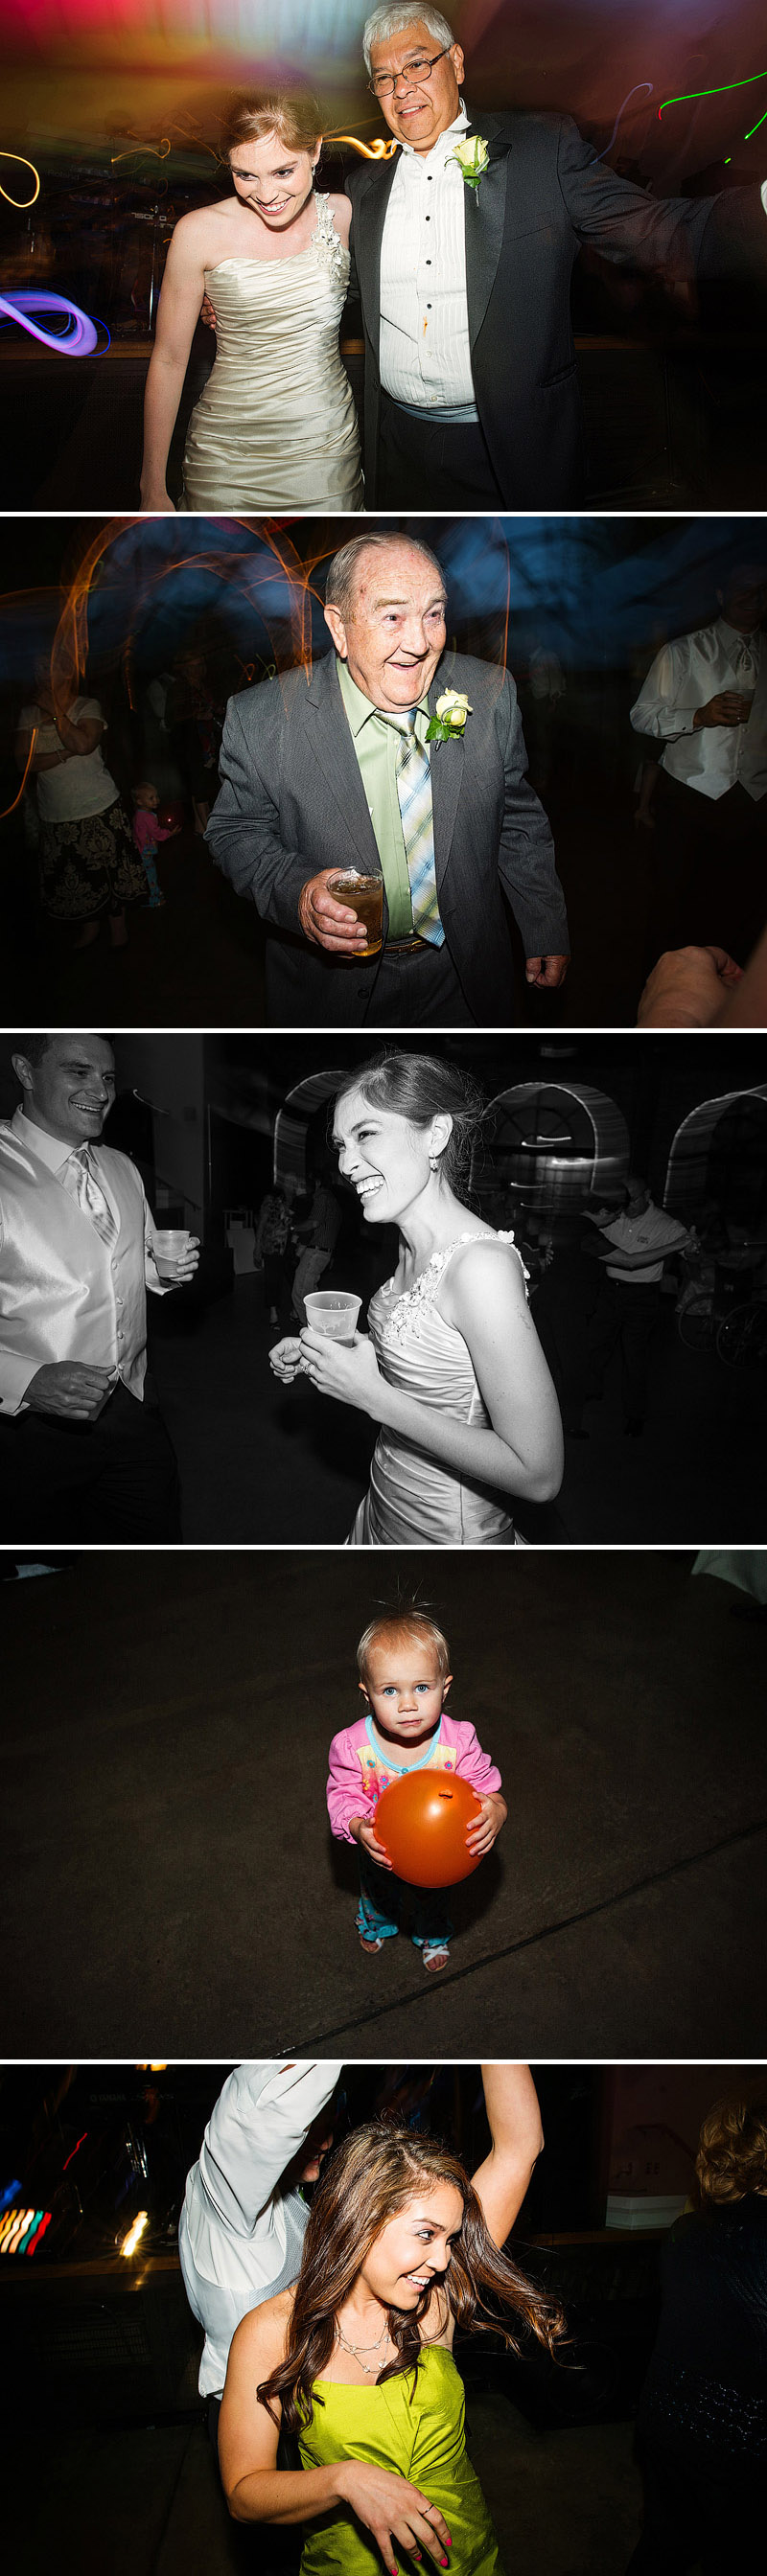 Awesome wedding reception.